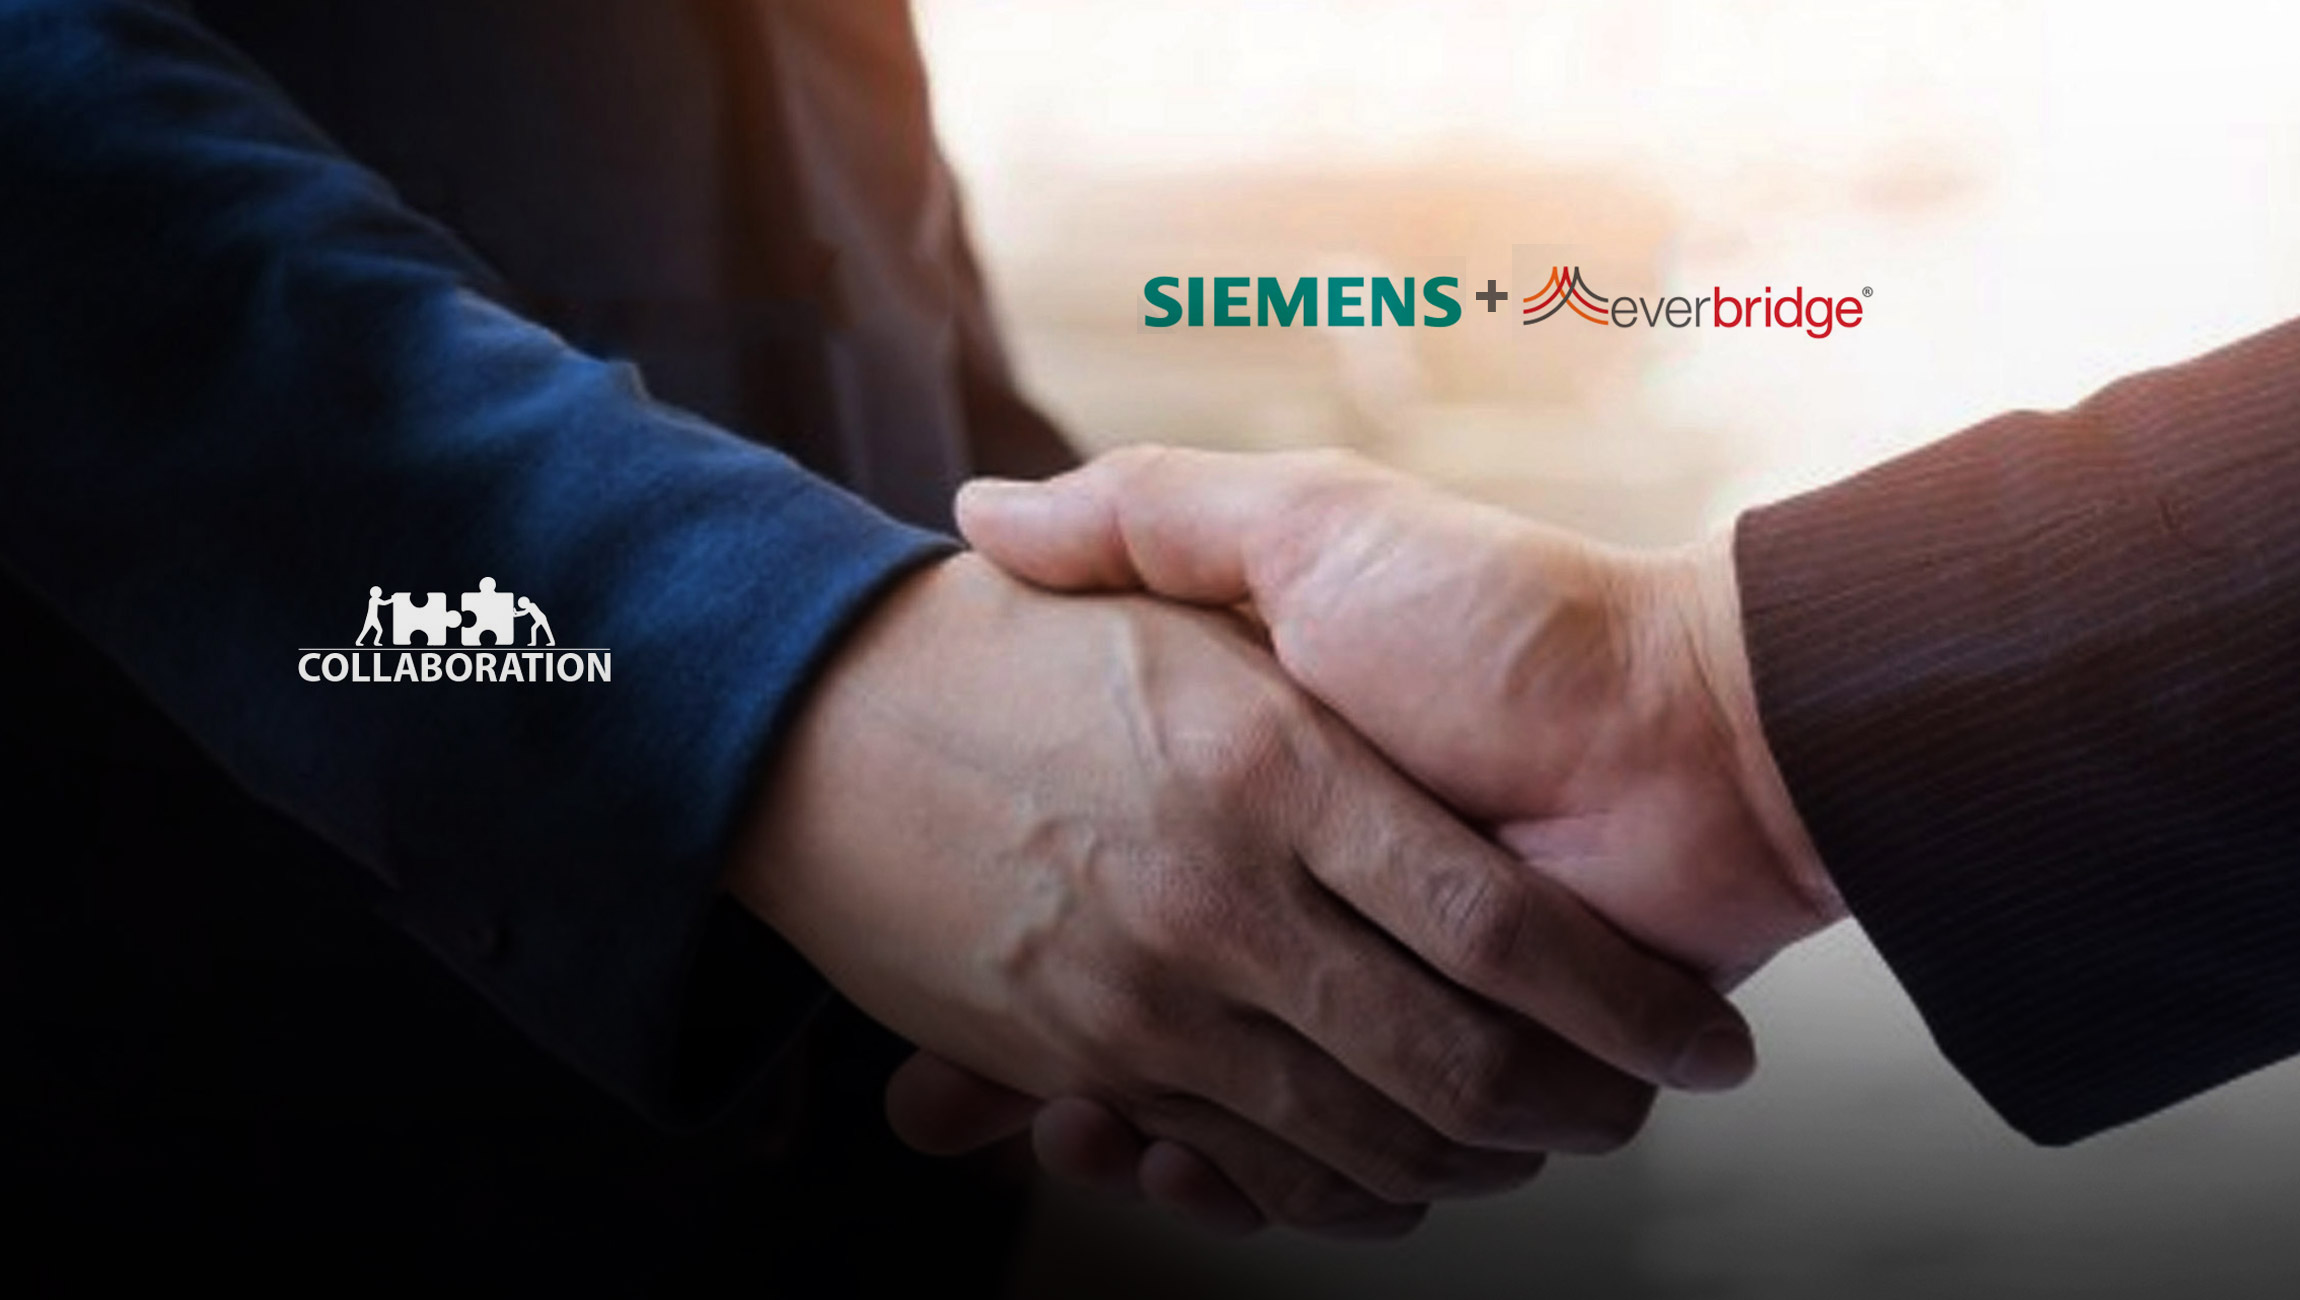 Siemens Partners with Everbridge for Critical Event Management (CEM) and Forms Technology Alliance